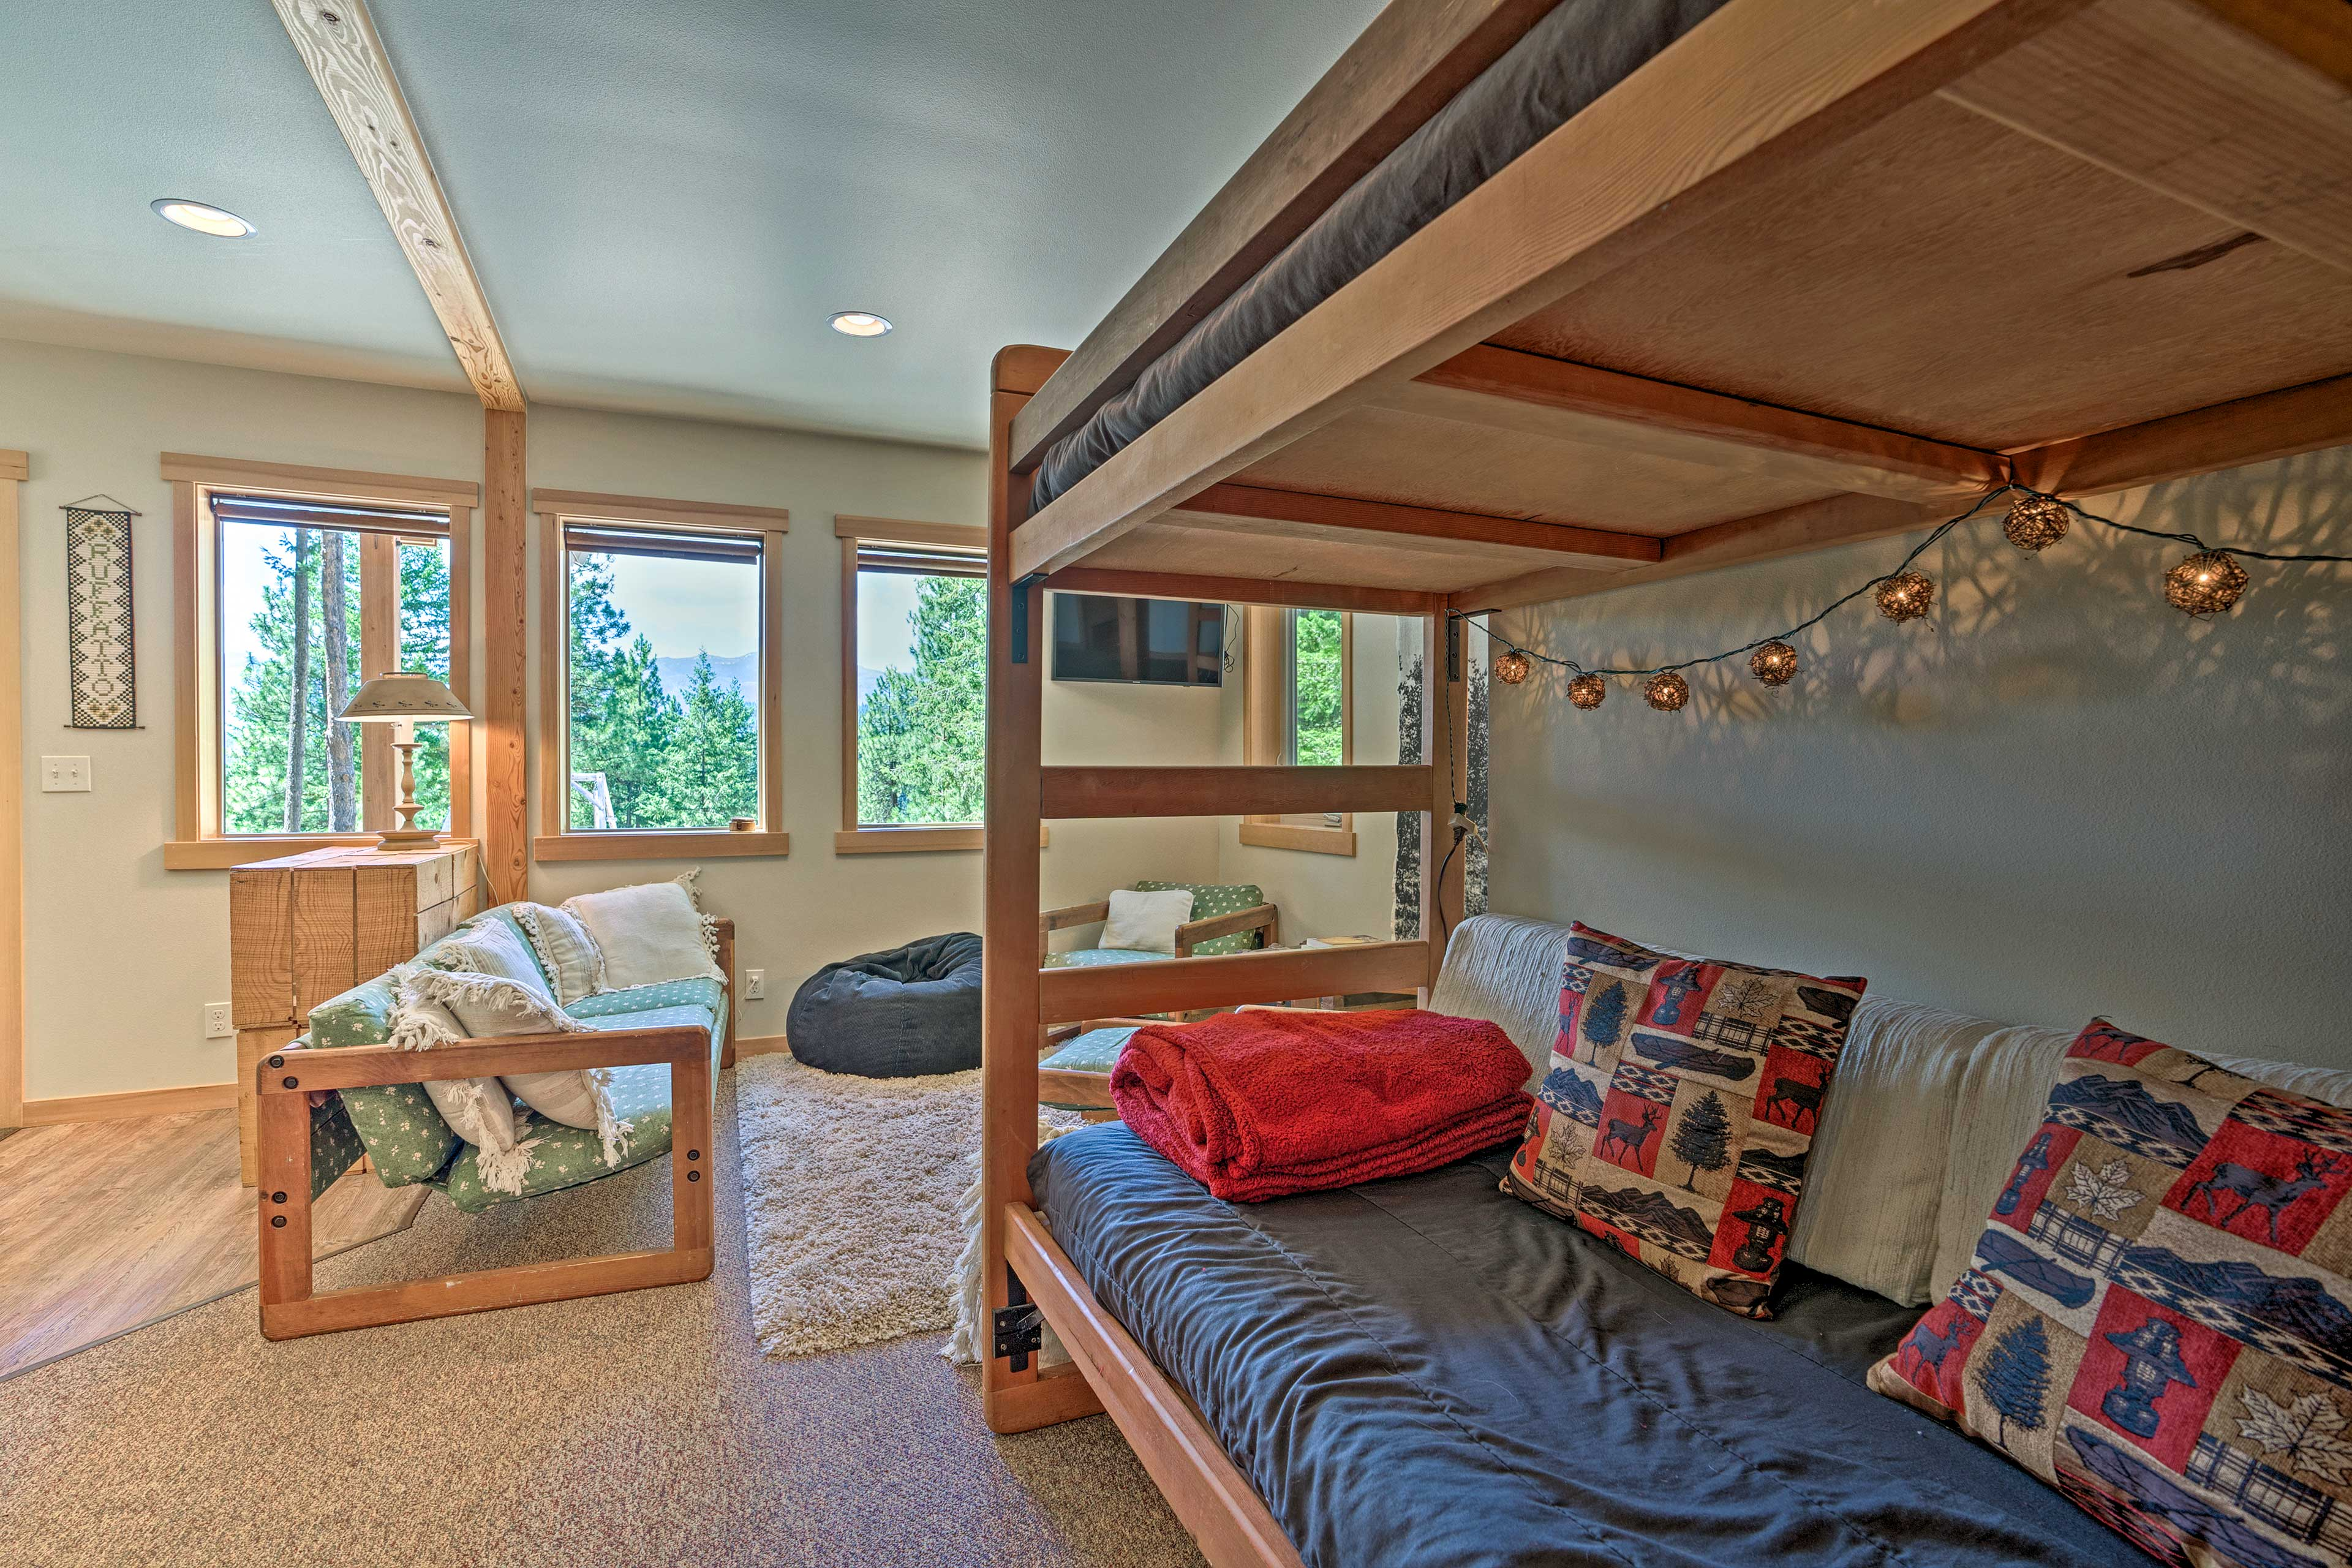 This area has a twin bunk bed.